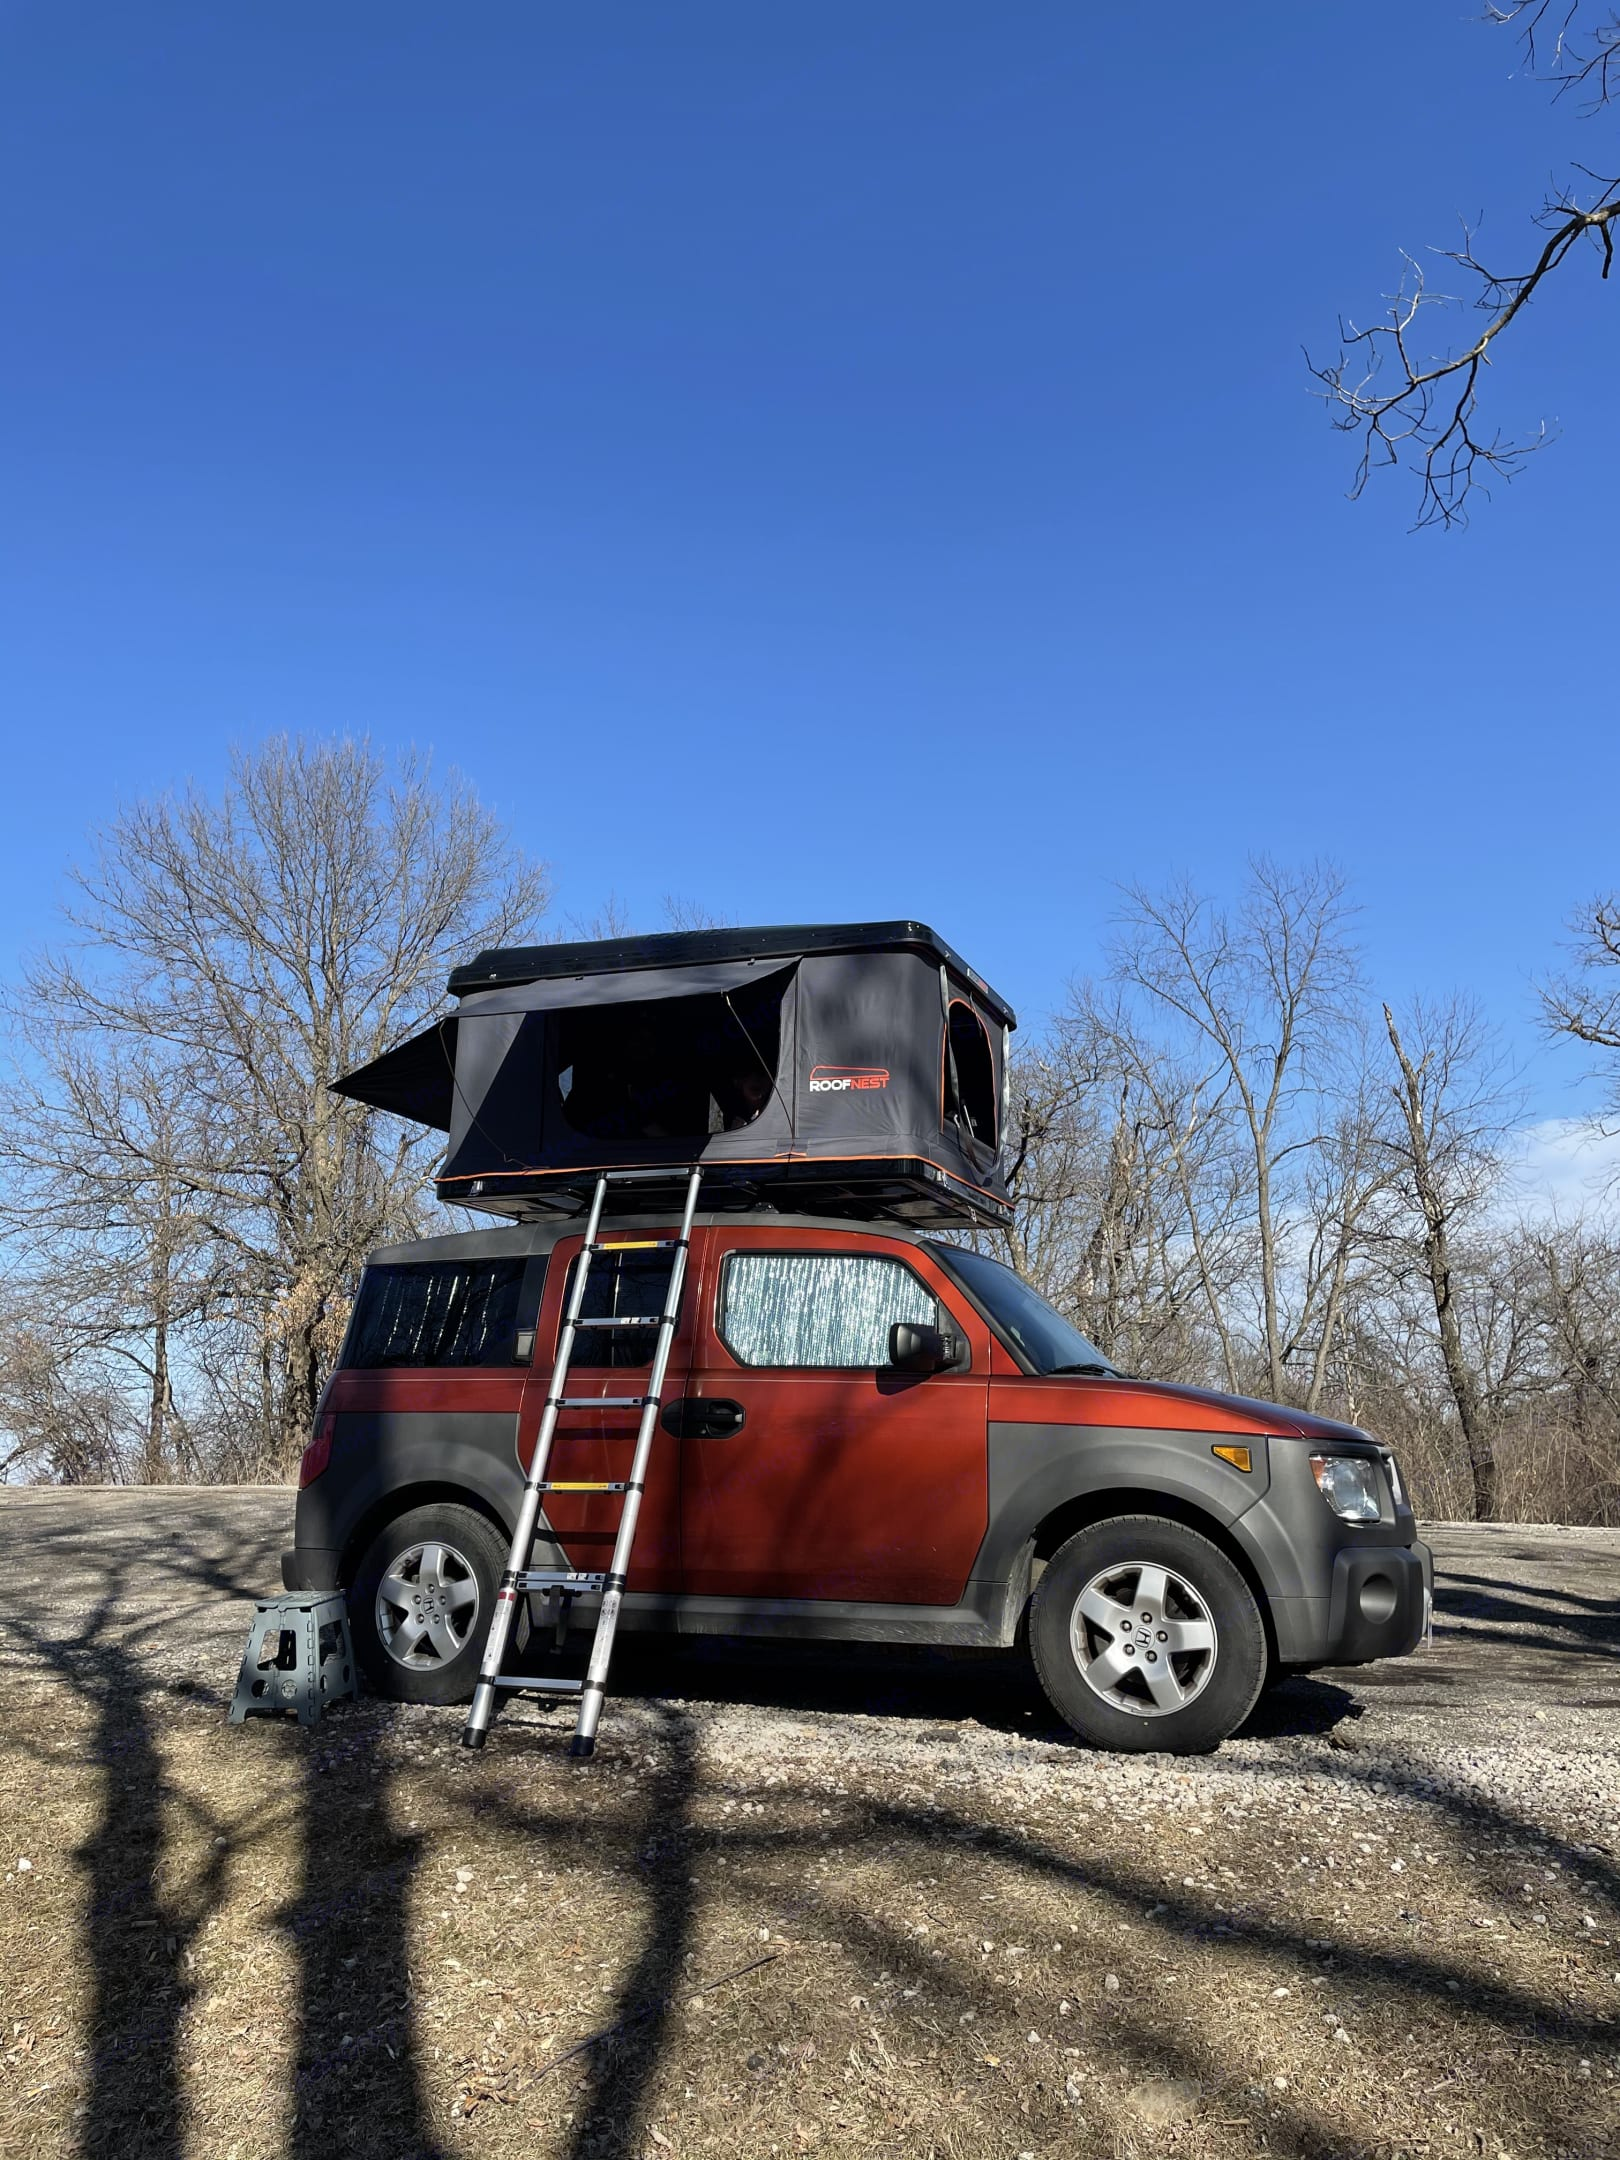 Just in case your high jump isn't at Olympic levels, Orange has a ladder to get in and out of the tent.. Honda Element 2005